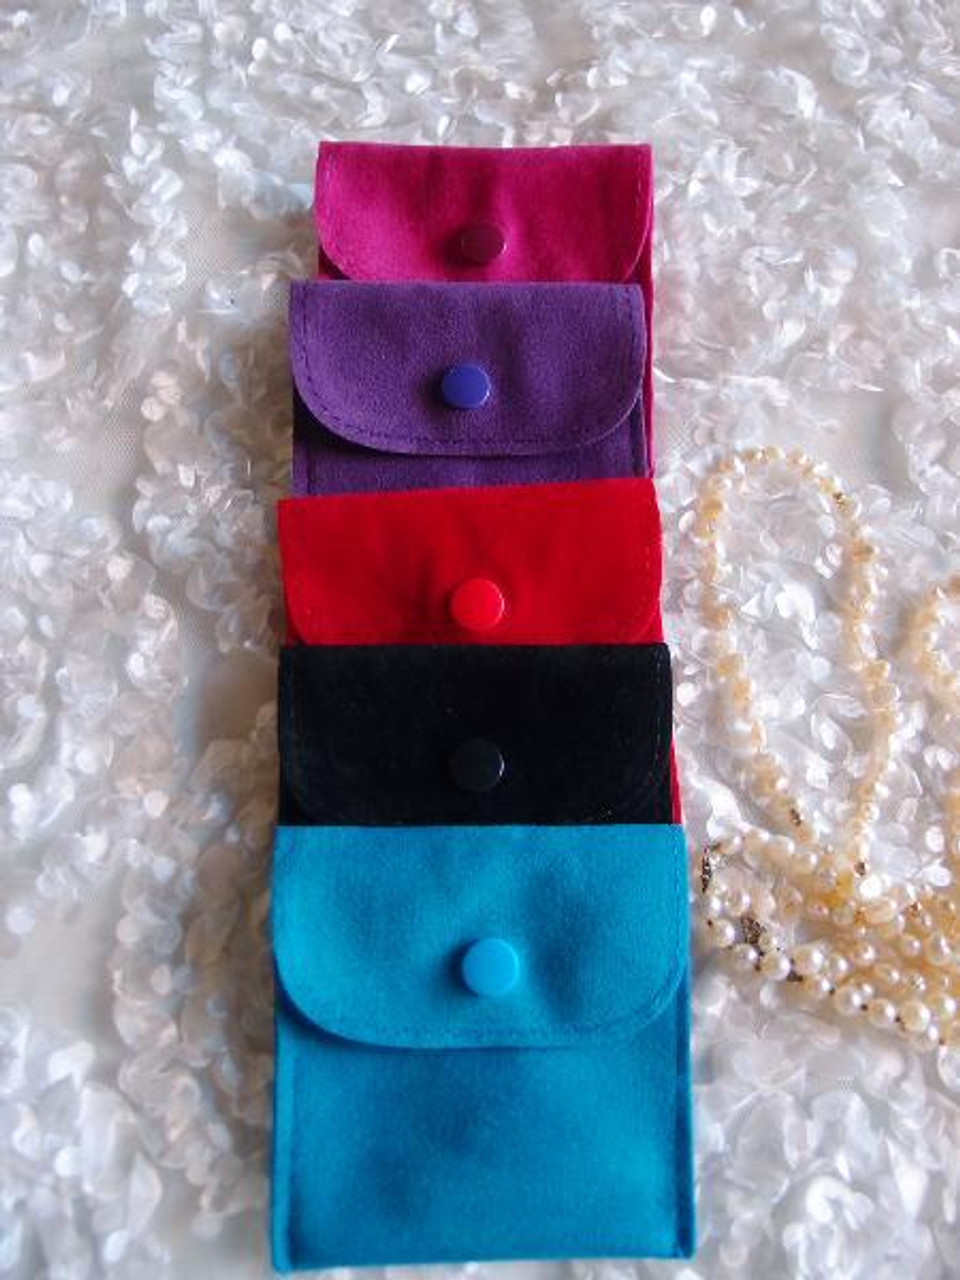 Wholesale Velvet Jewelry Pouches Blue Velvet Flapover Jewelry Pouch With Snap Fastener 3 X 3